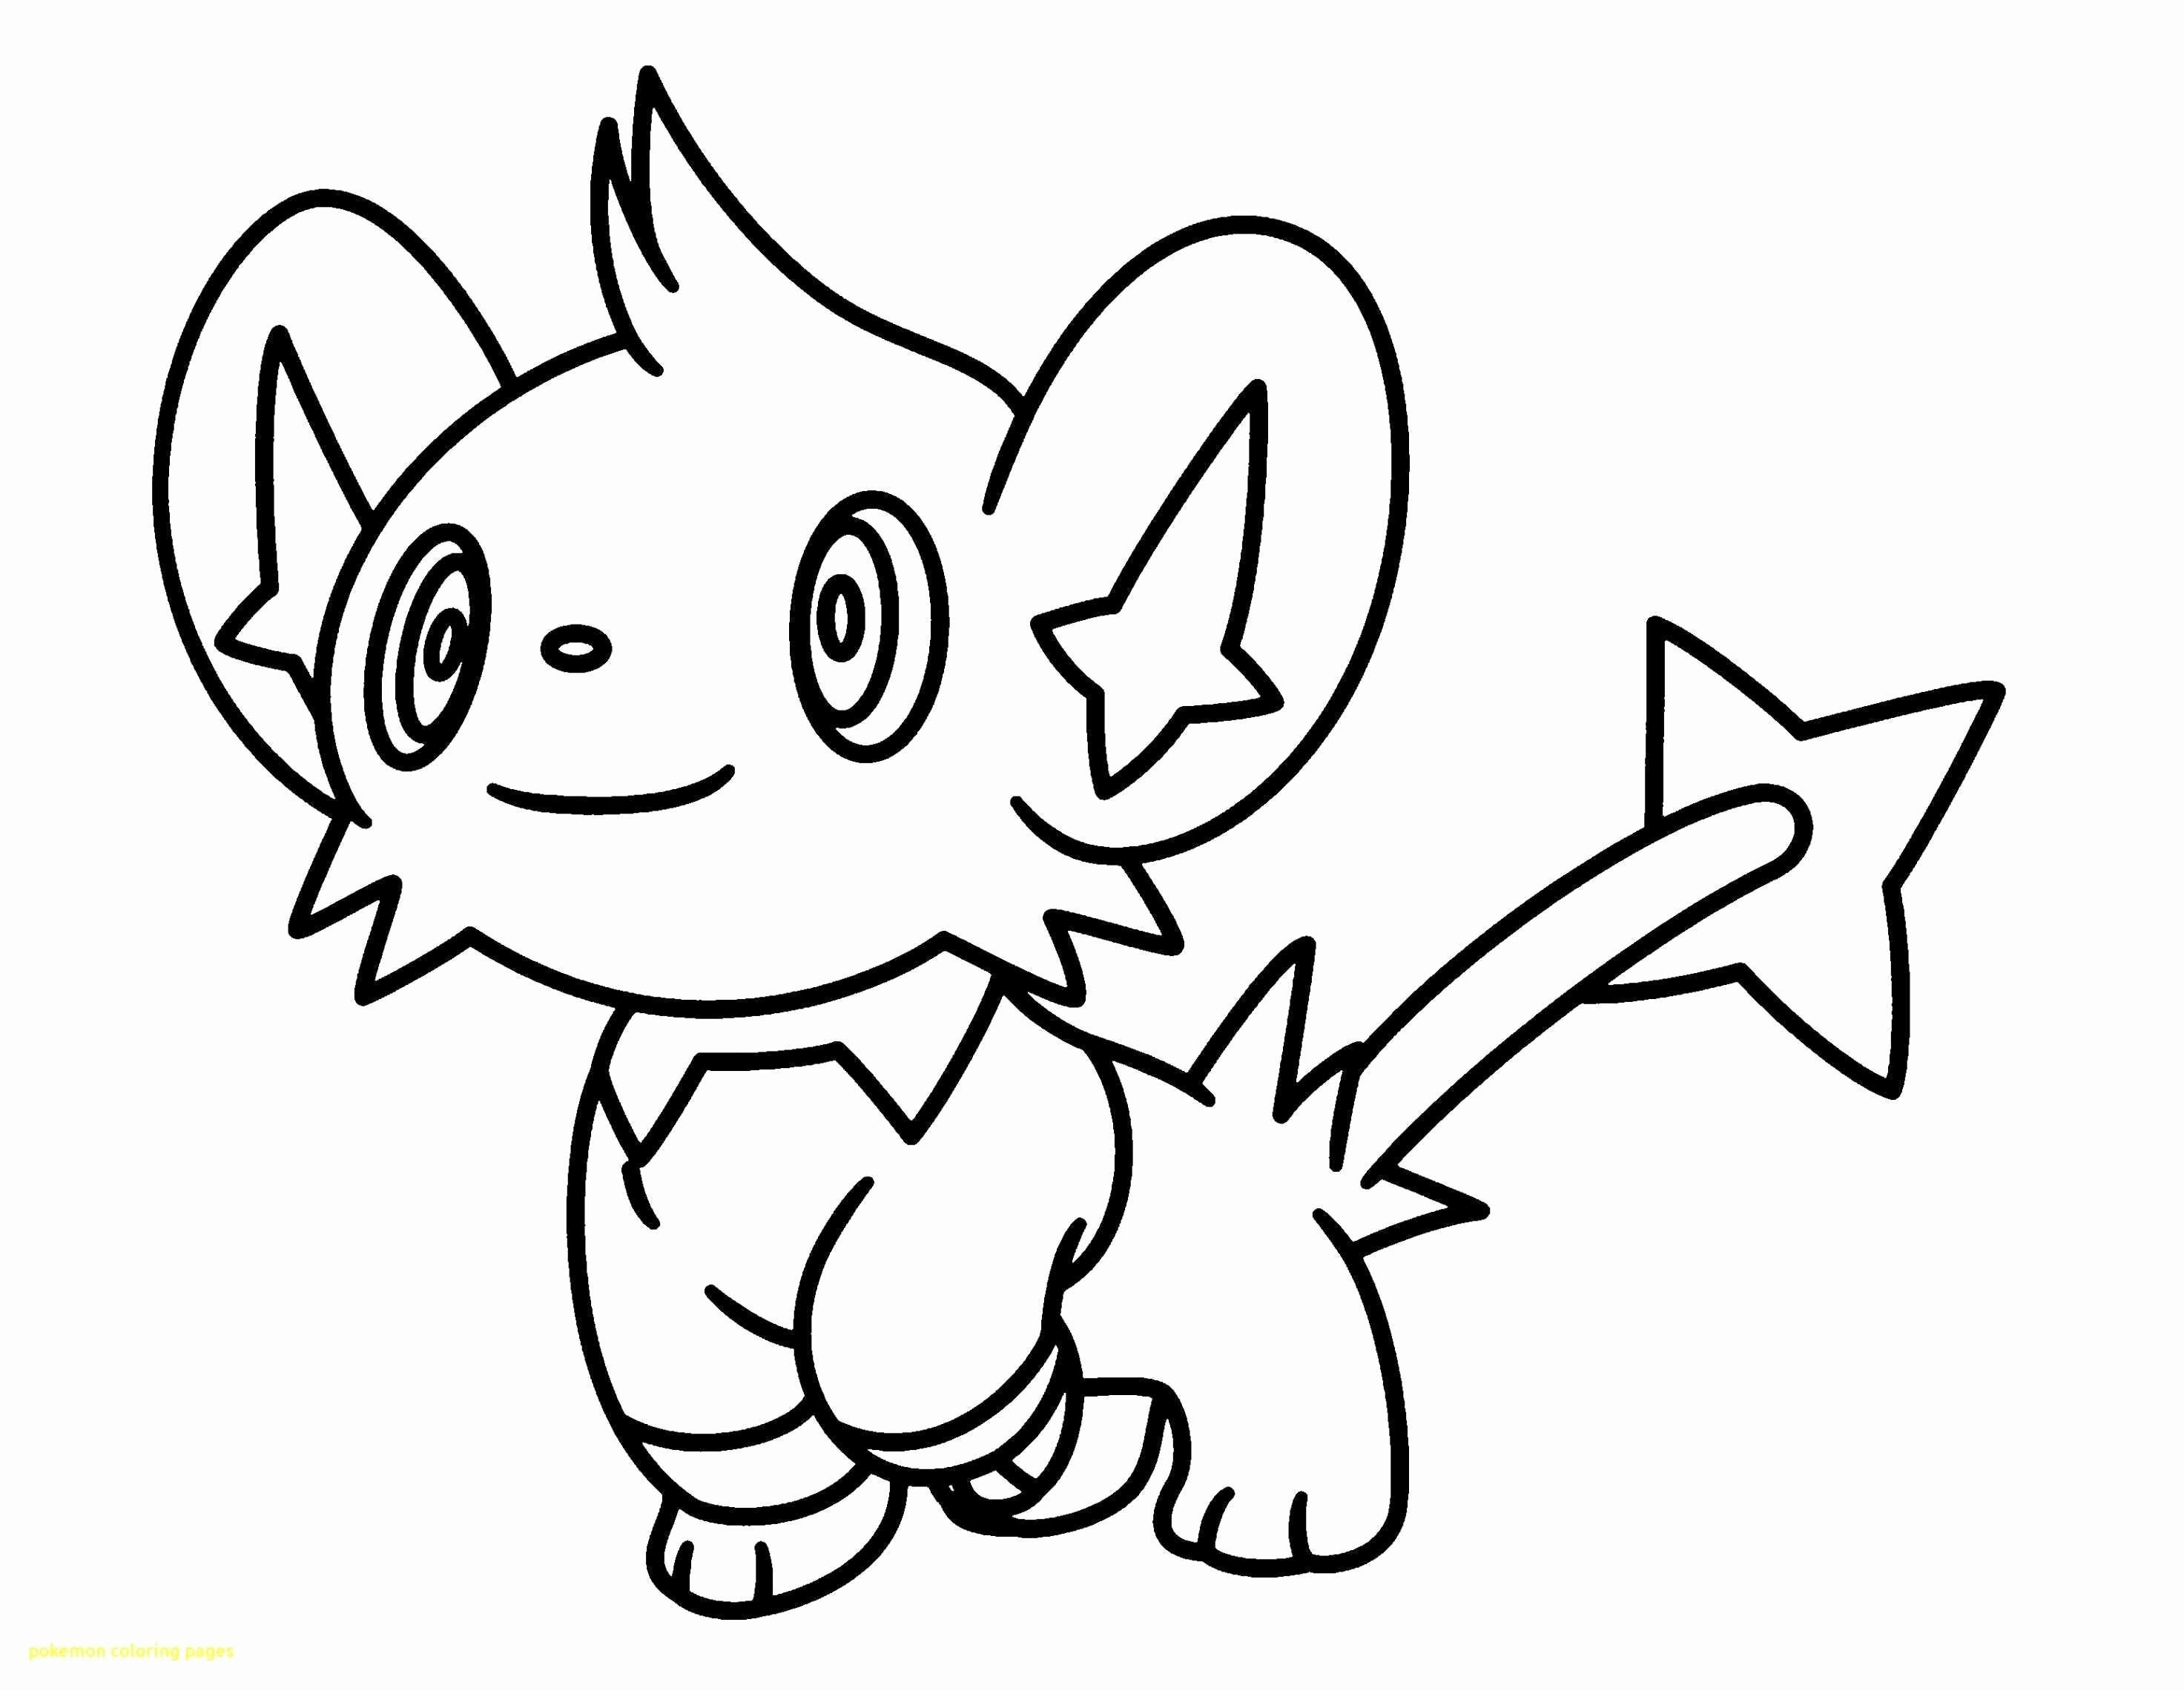 Pokemon 80 Coloring Pages Coloring Book Pokemon Birthday Party Pokemon Birthday Pokemon Coloring Pages